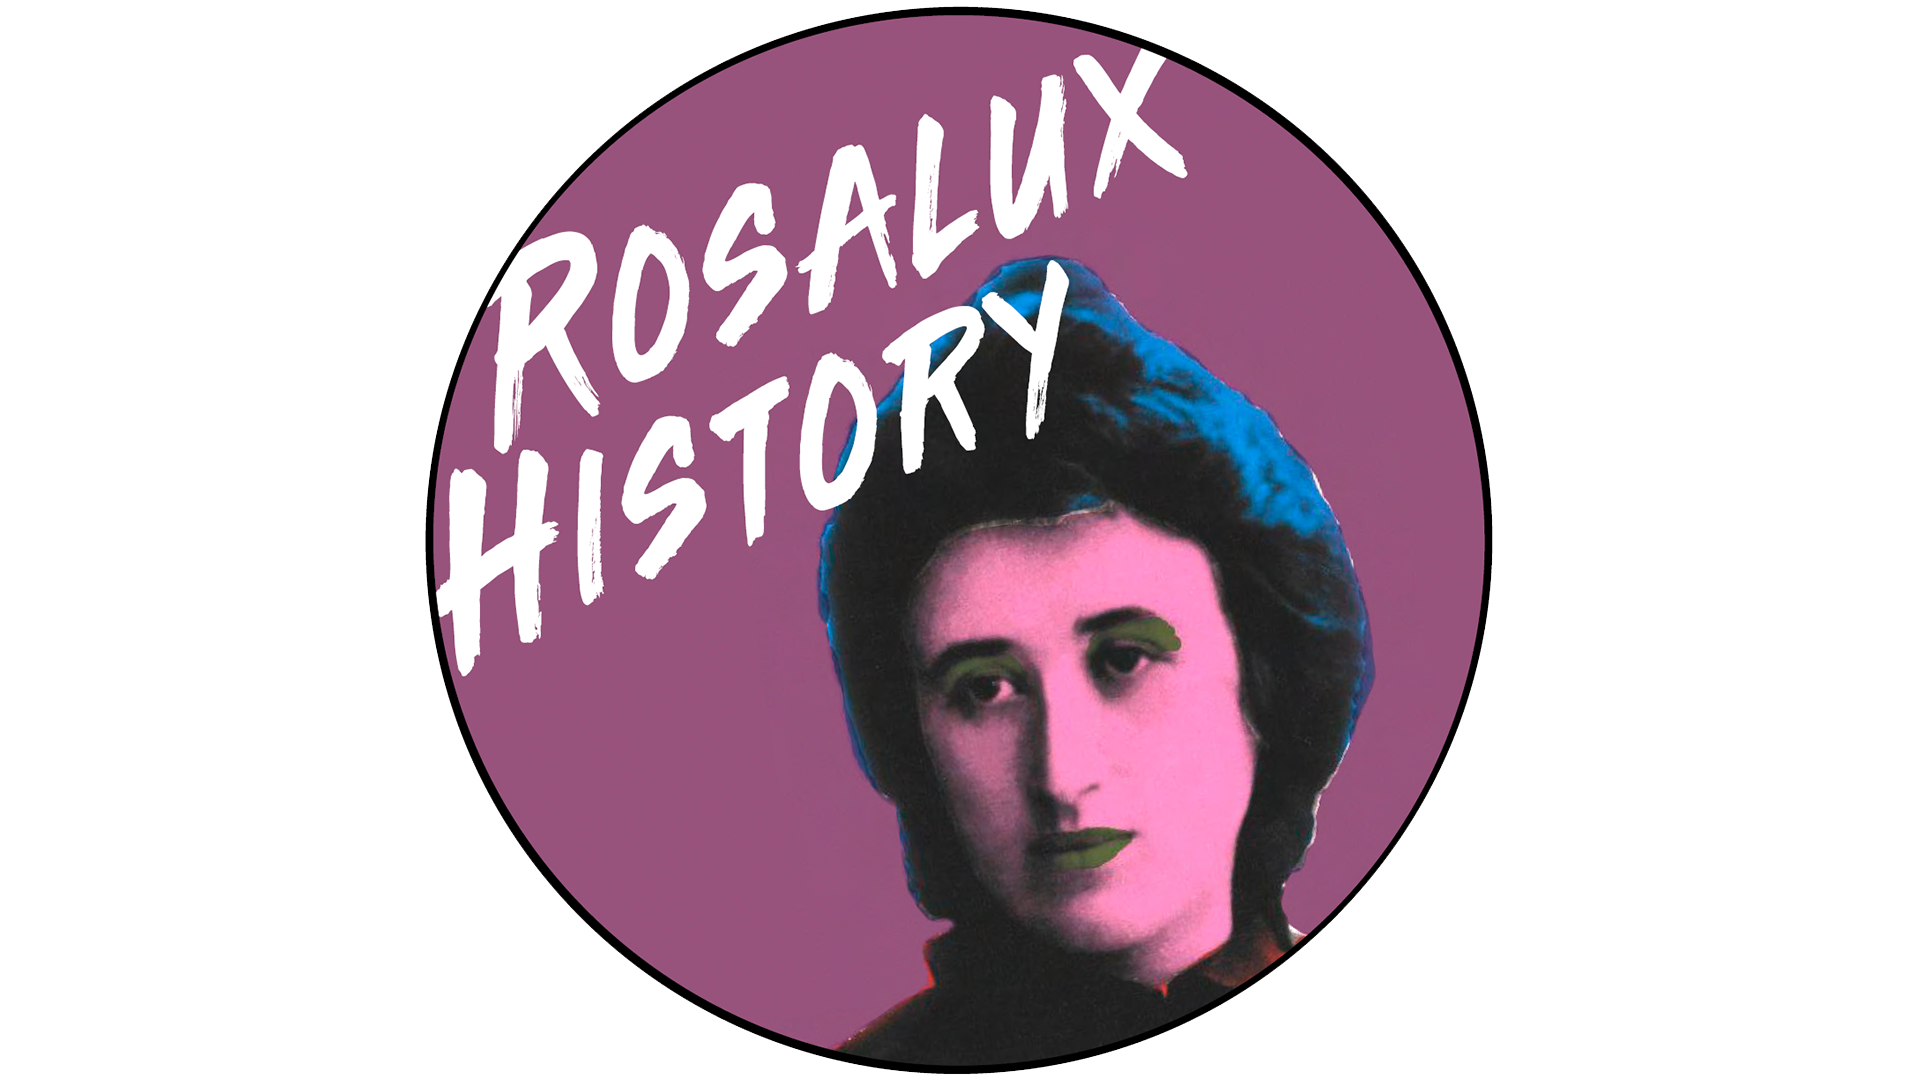 Rosalux History Podcast